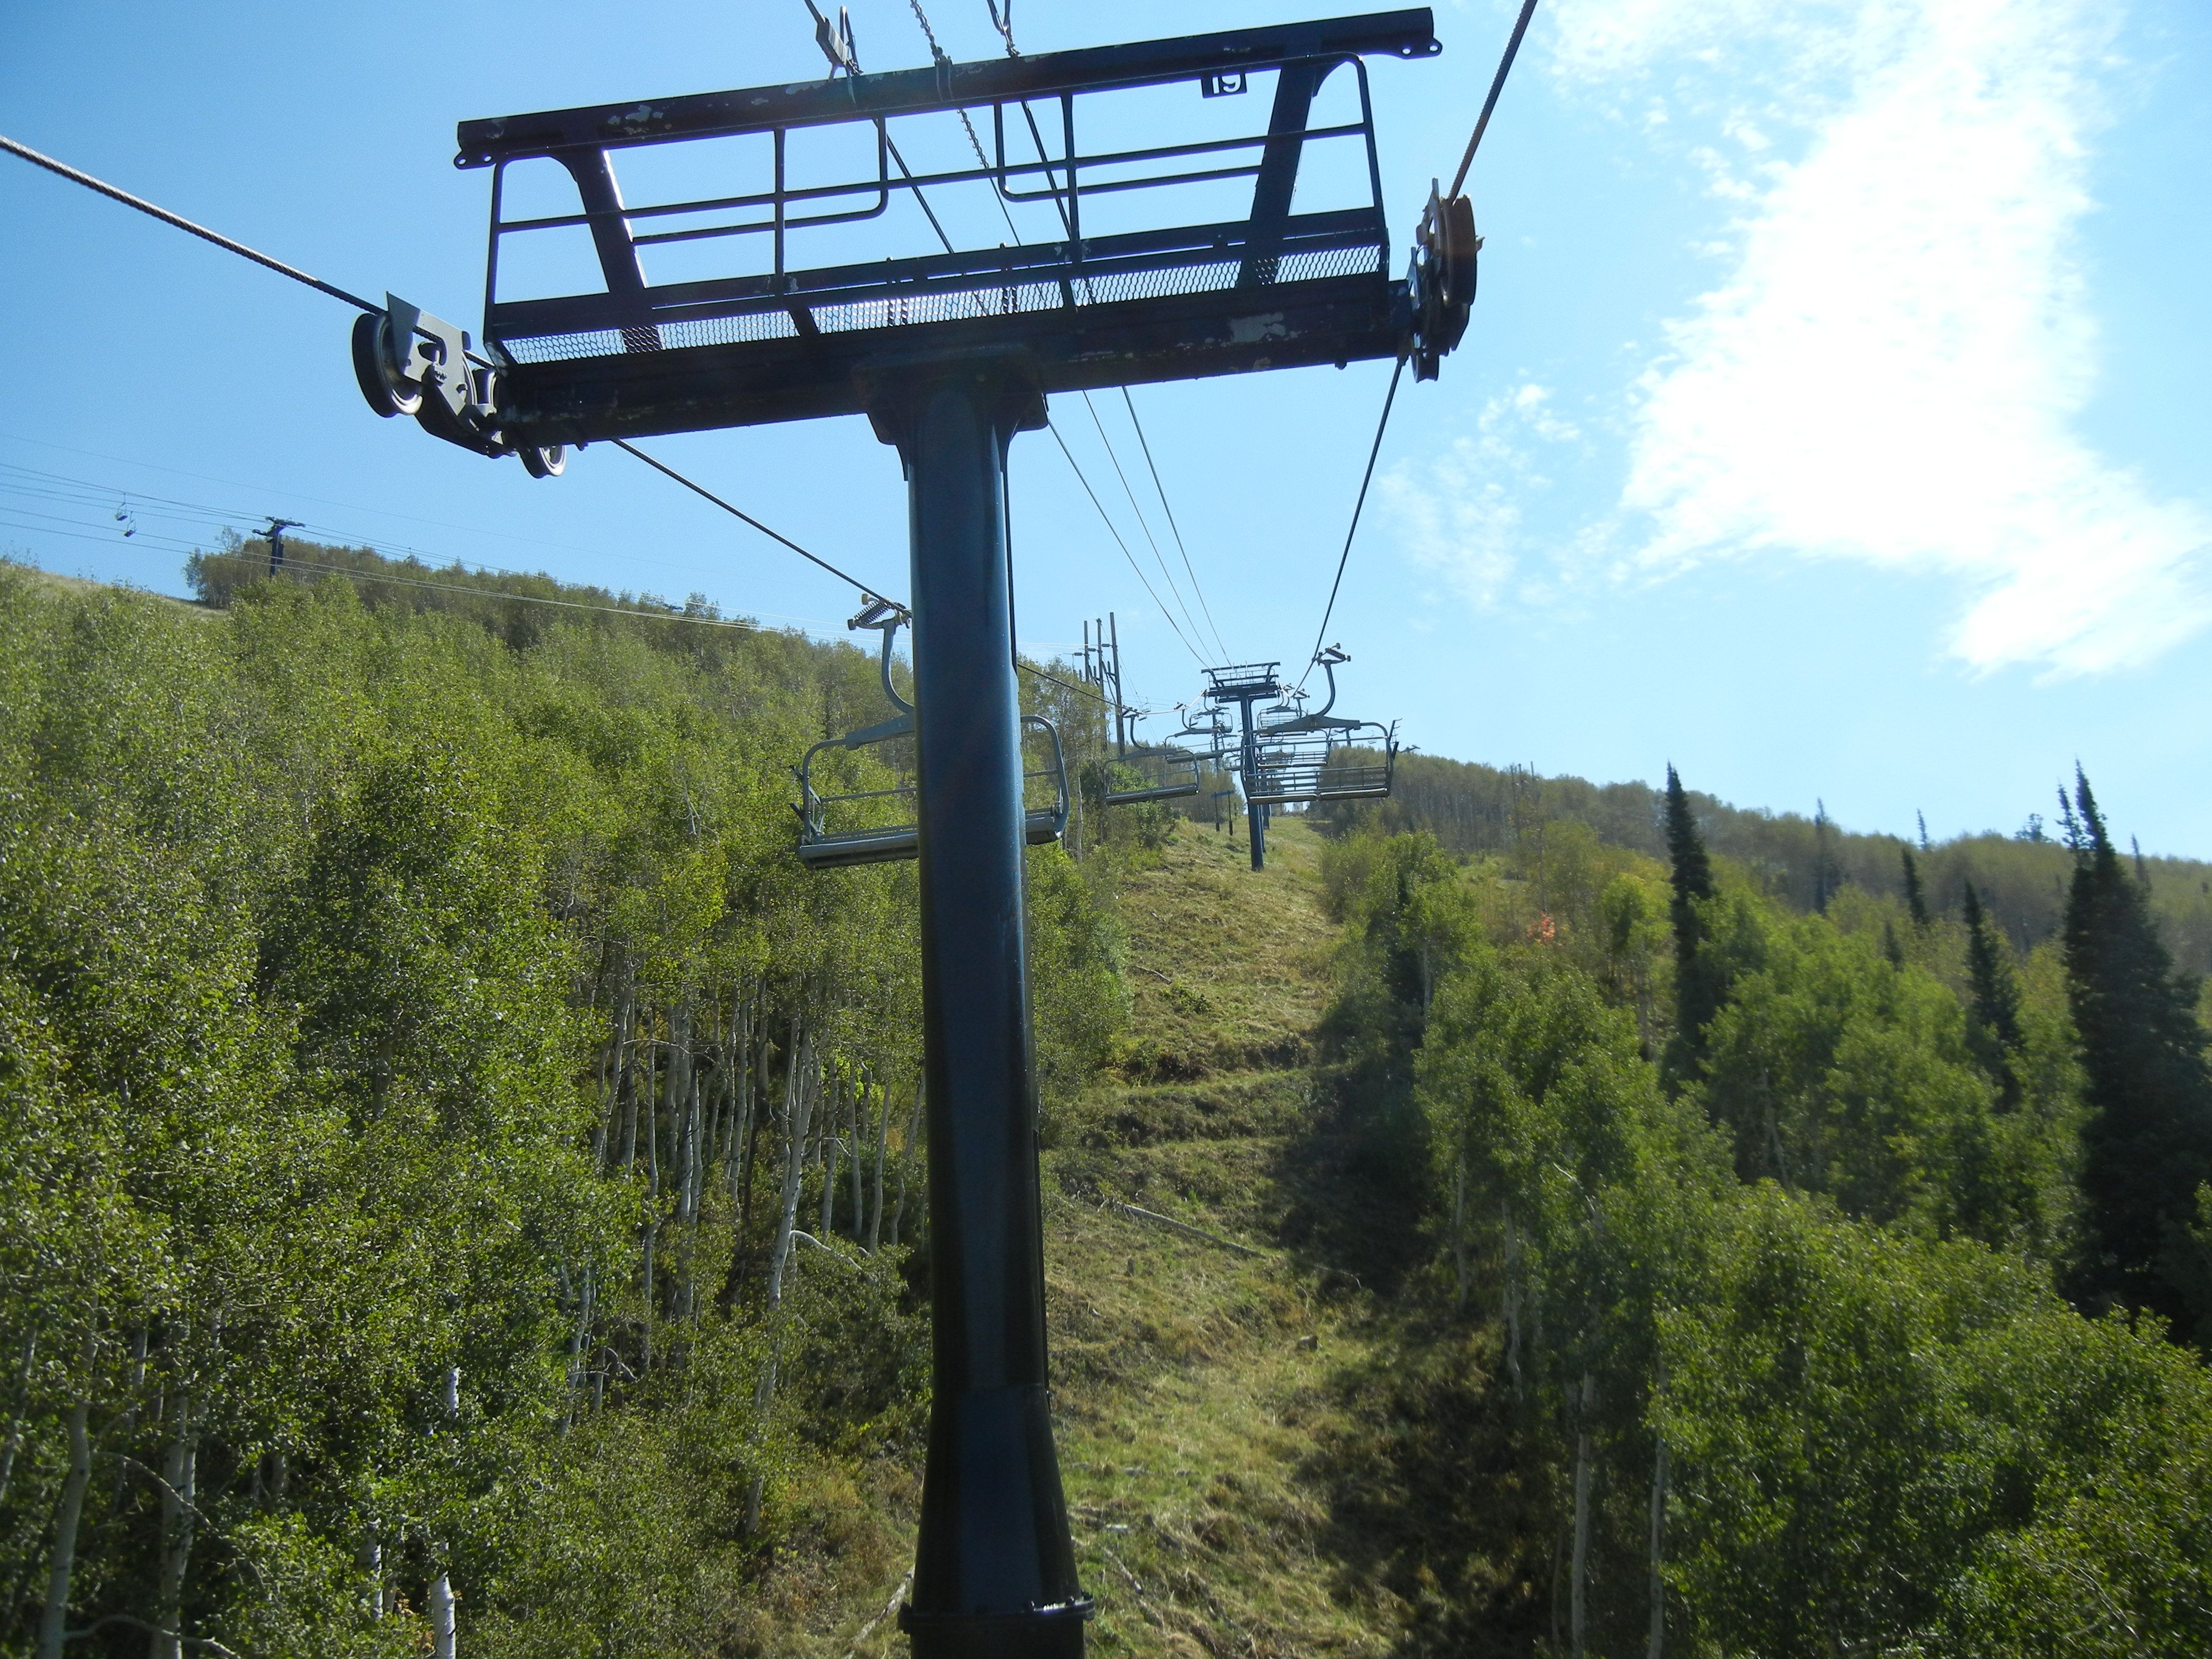 Riding on the larger chair lift at Park City Mountain Resort September 2015